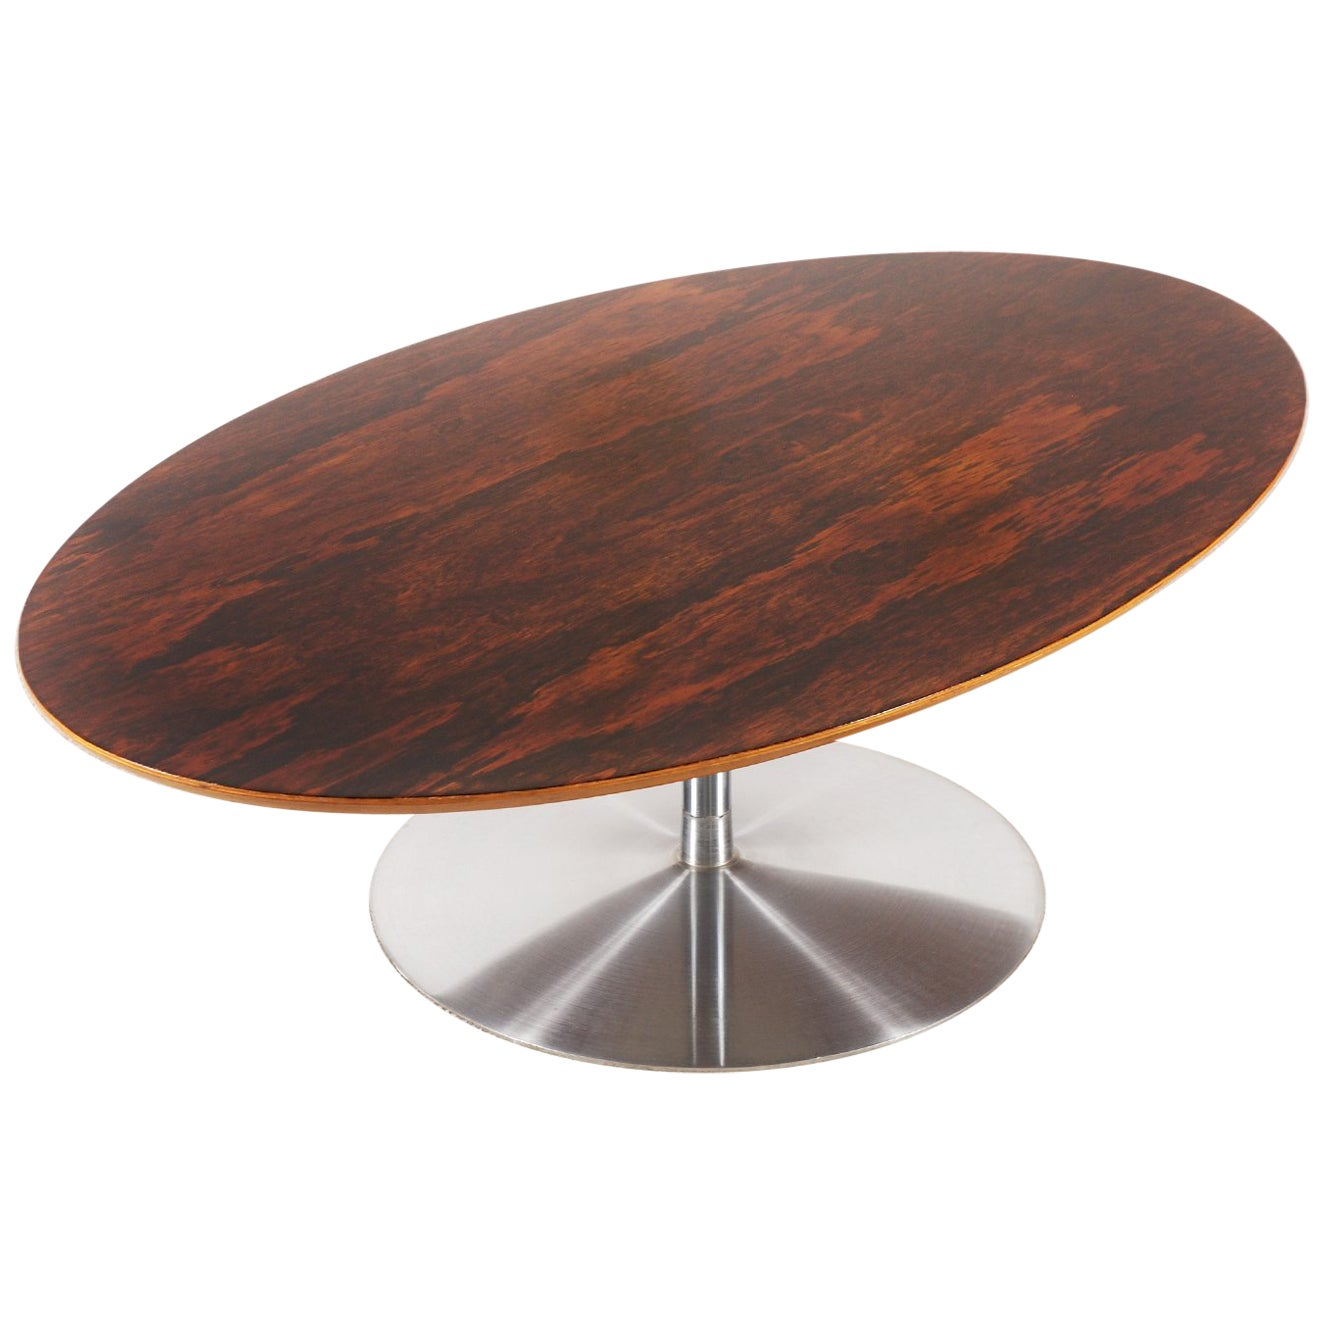 Rare Pierre Paulin Rosewood Coffee Table for Artifort, 1960s